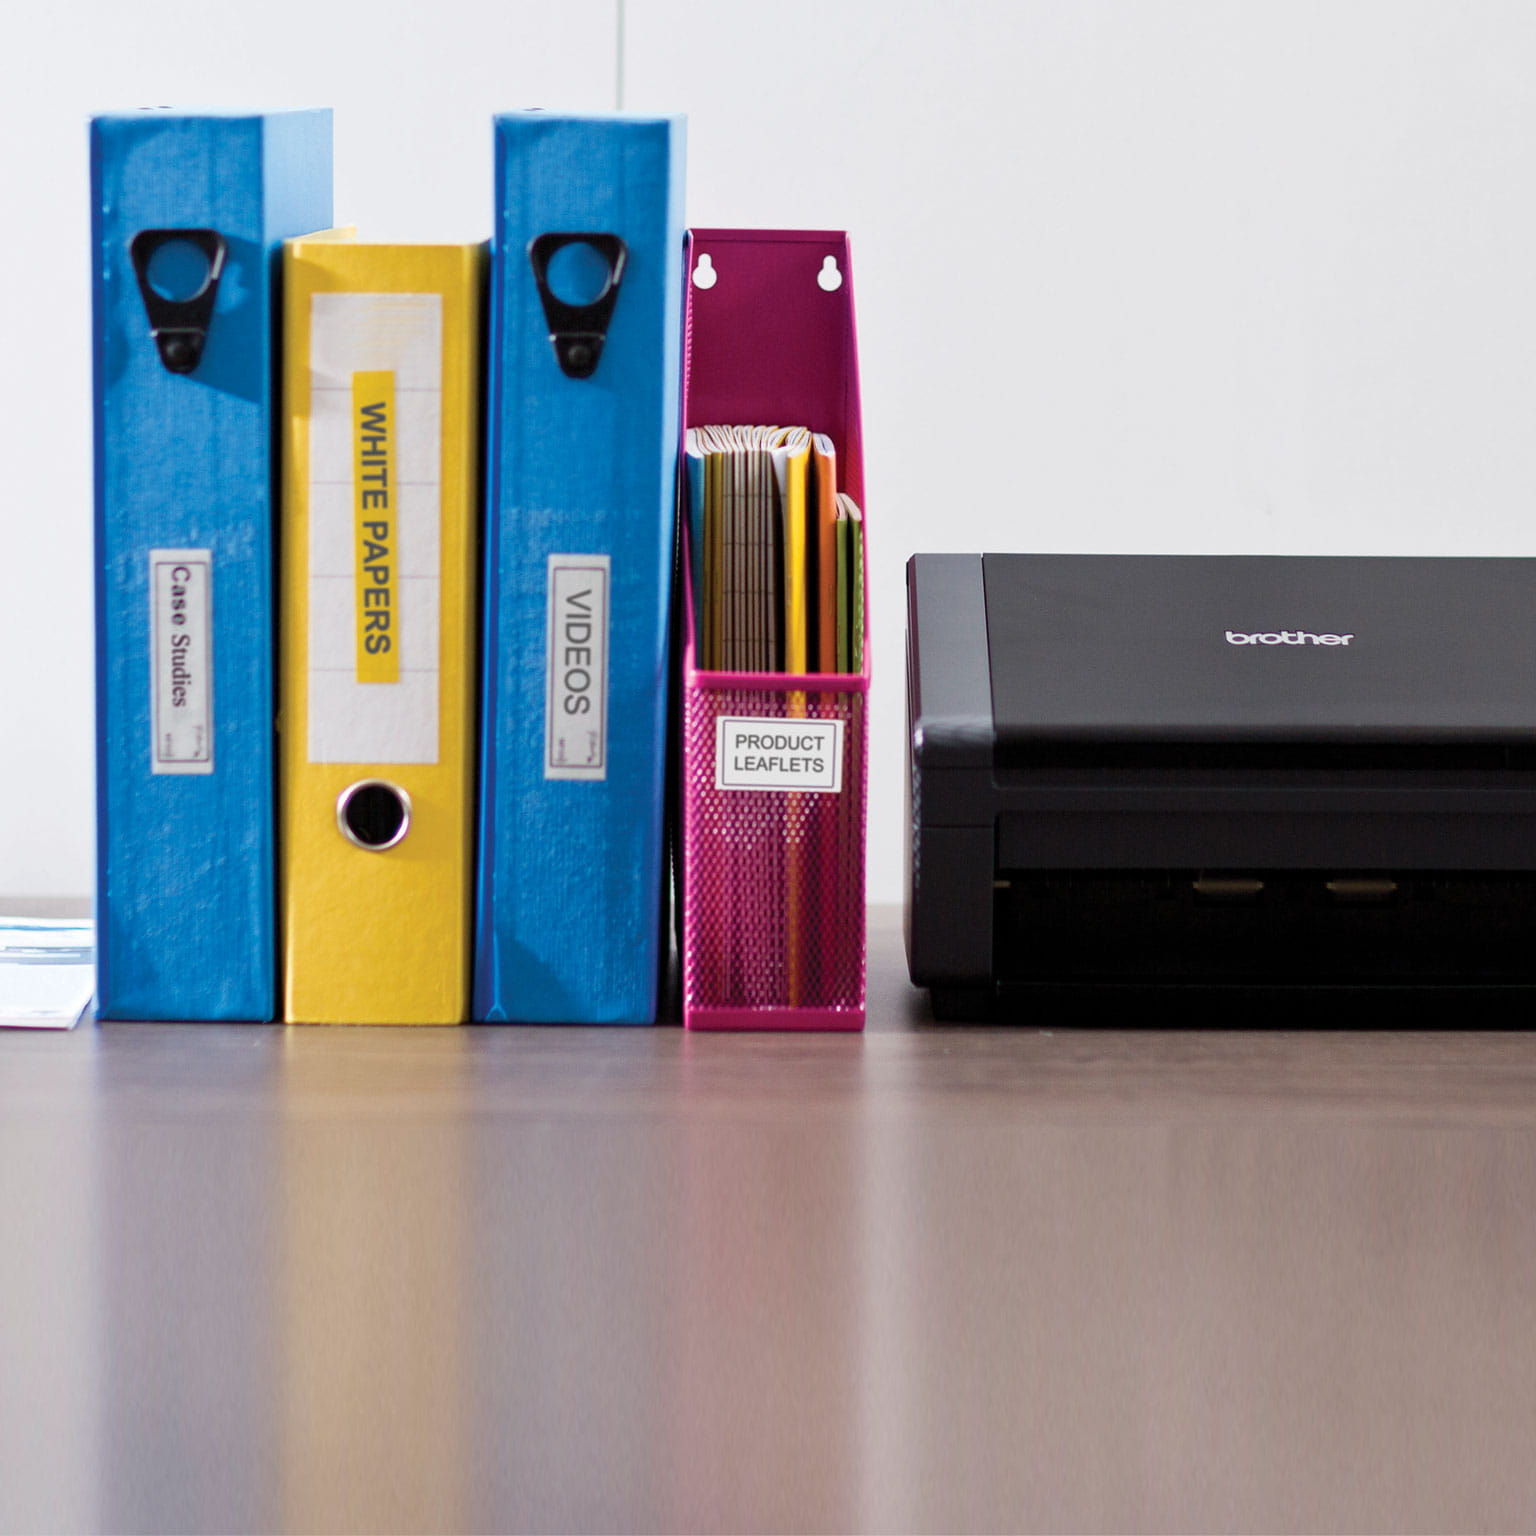 4 folders standing up next to a brother printer